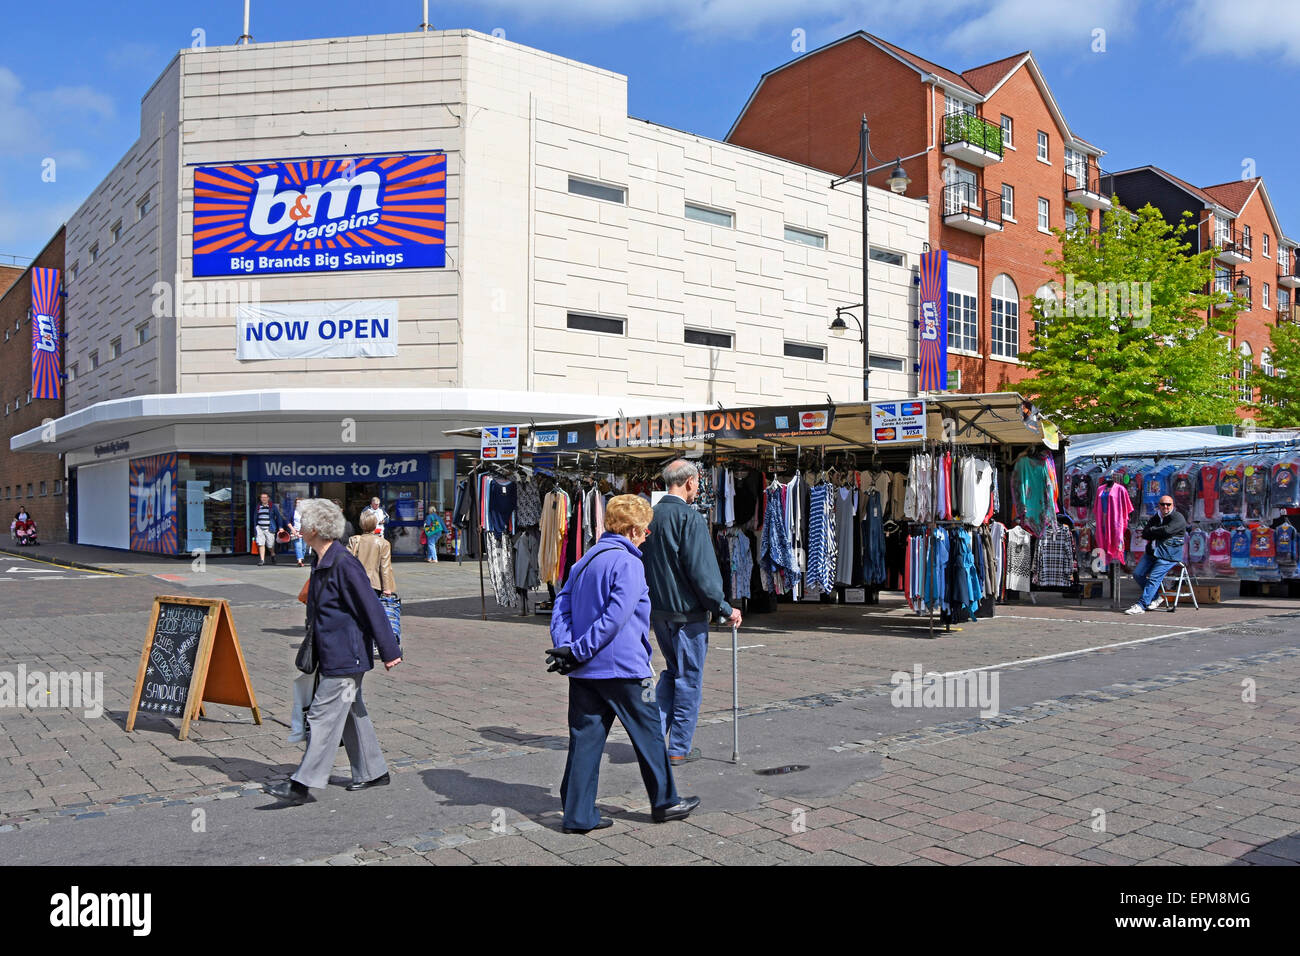 Romford market place stalls with a recently opened B&M bargain store - Stock Image